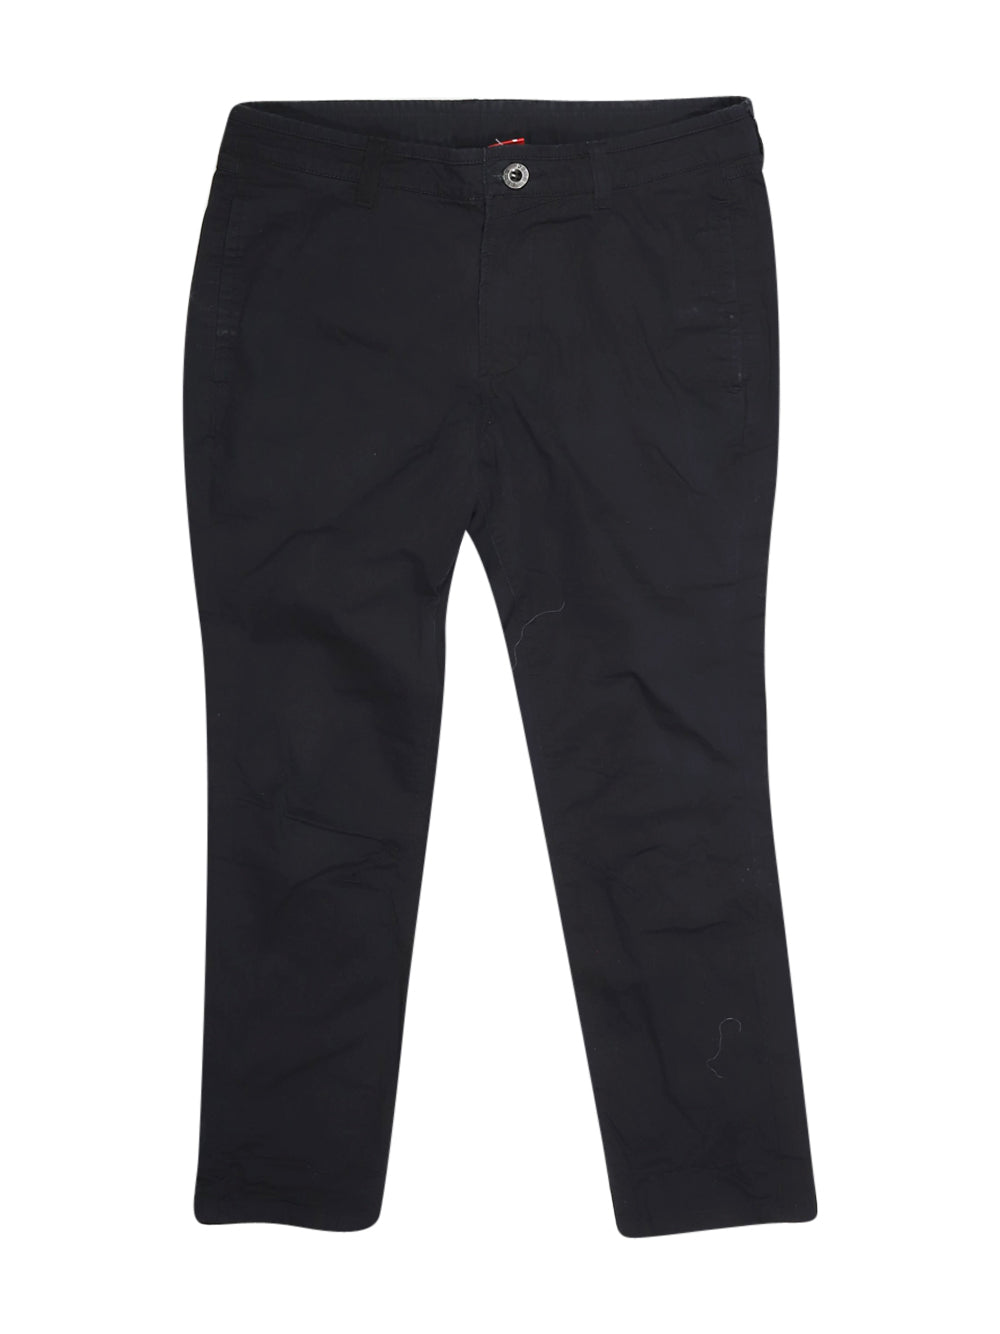 Front photo of Preloved Puma Black Woman's trousers - size 12/L